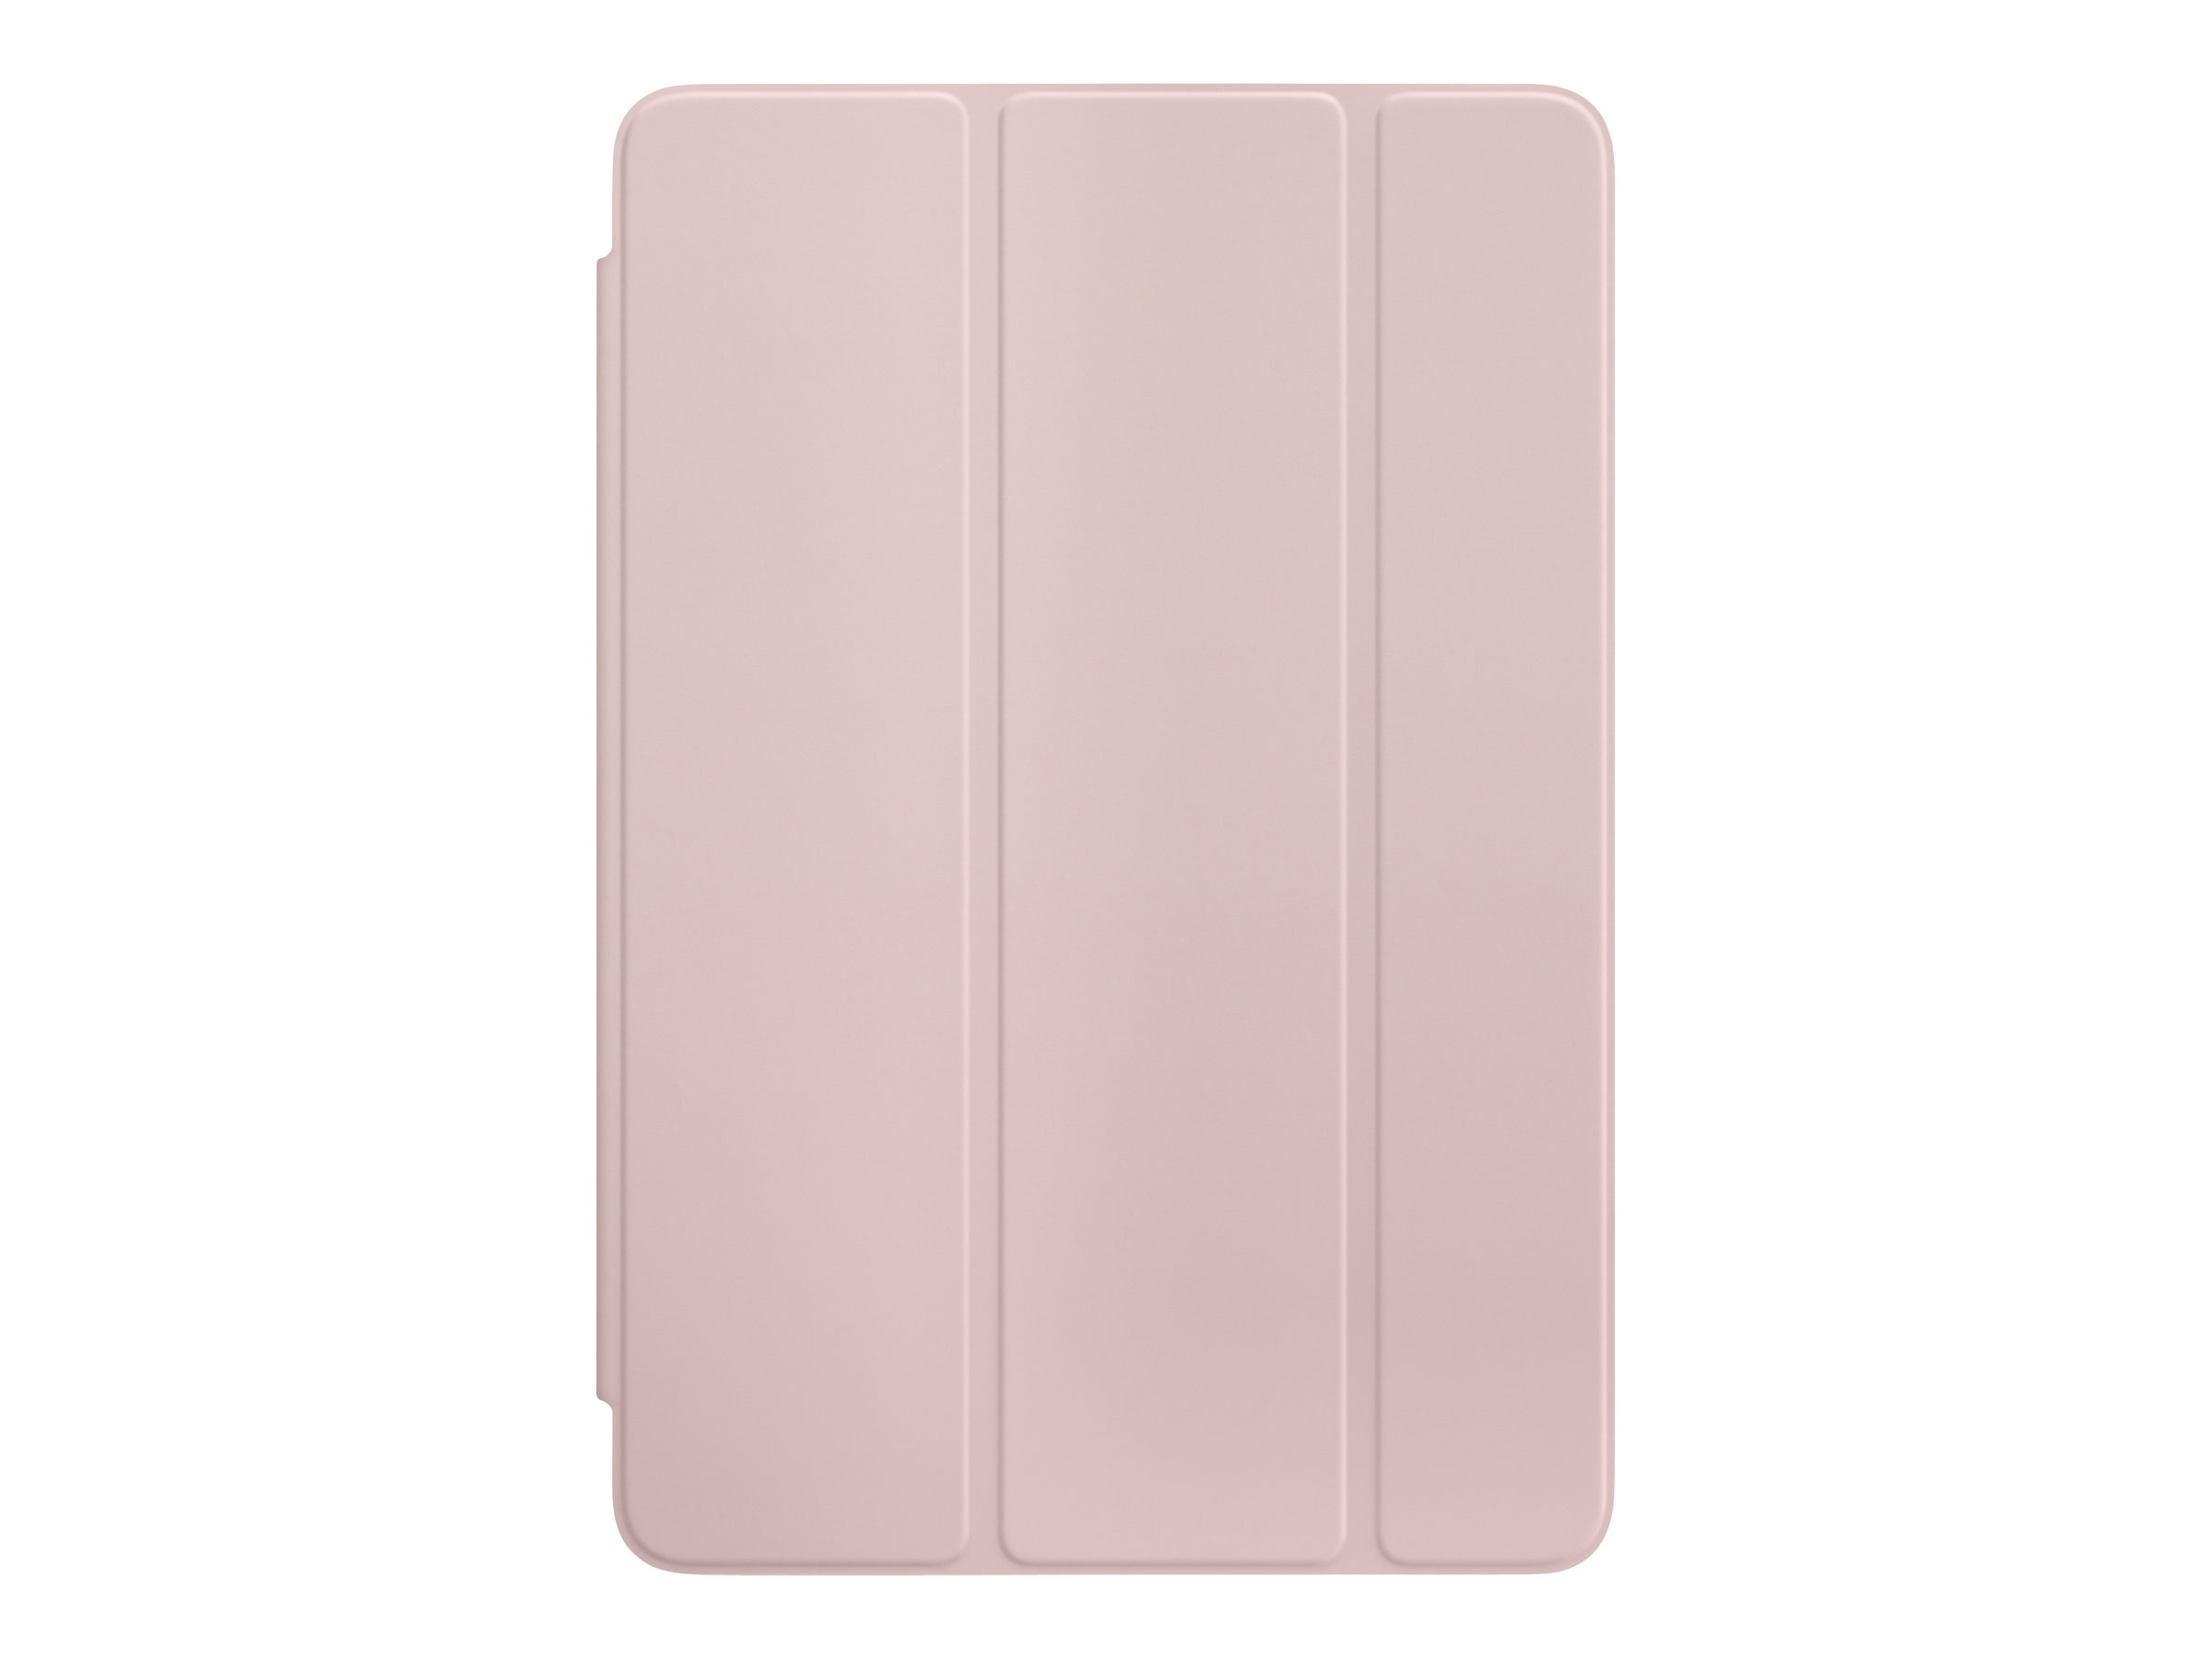 Apple Smart Cover for iPad mini 4, Pink Sand, MNN32ZM/A, 32669163, Carrying Cases - Tablets & eReaders